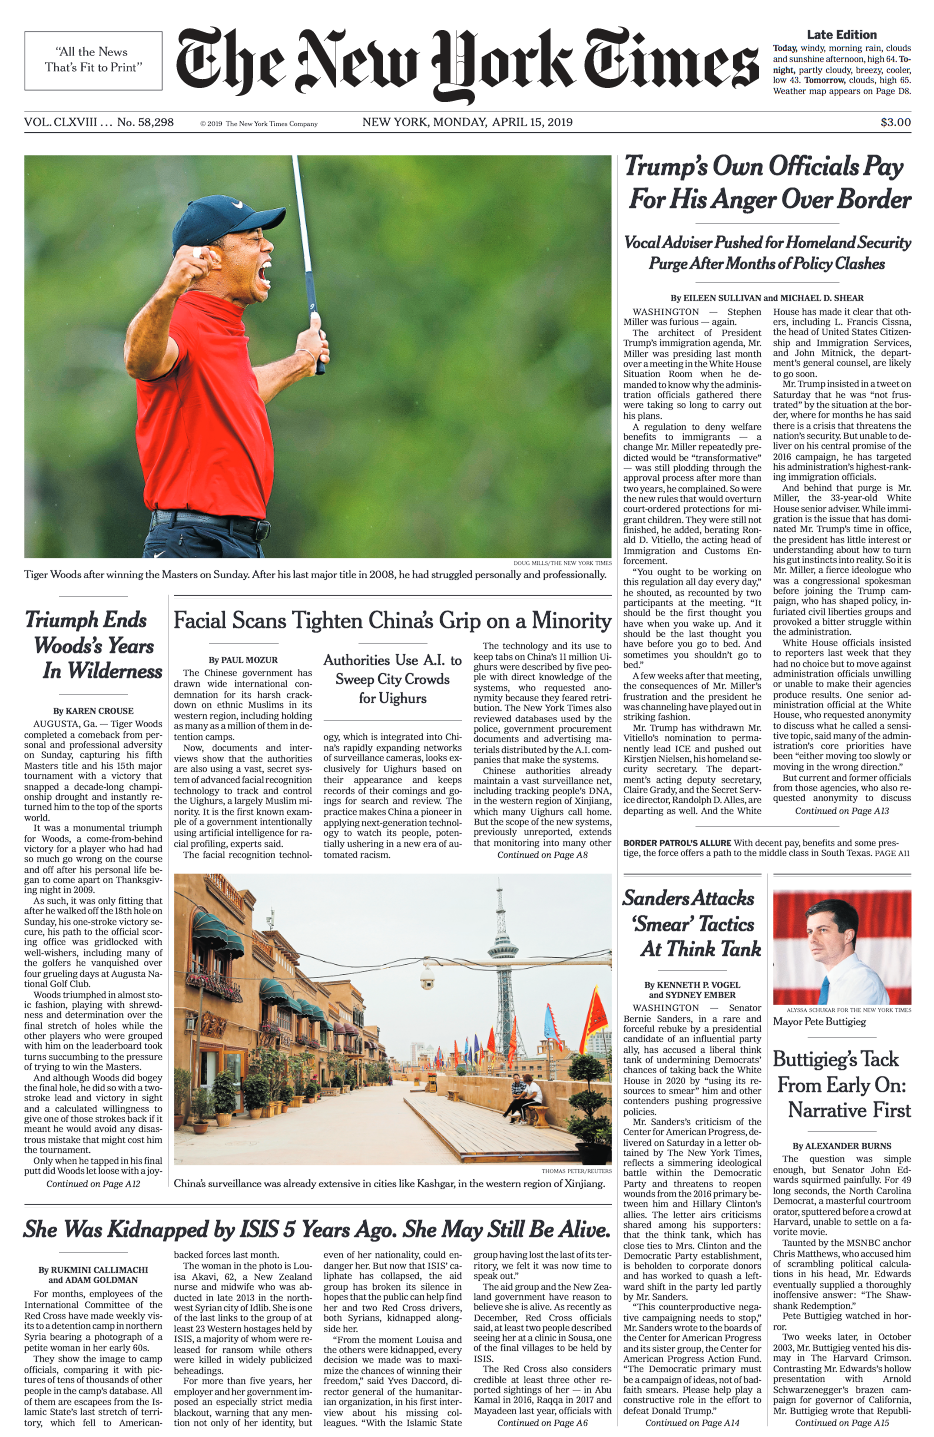 NYT_FrontPage_041519.png